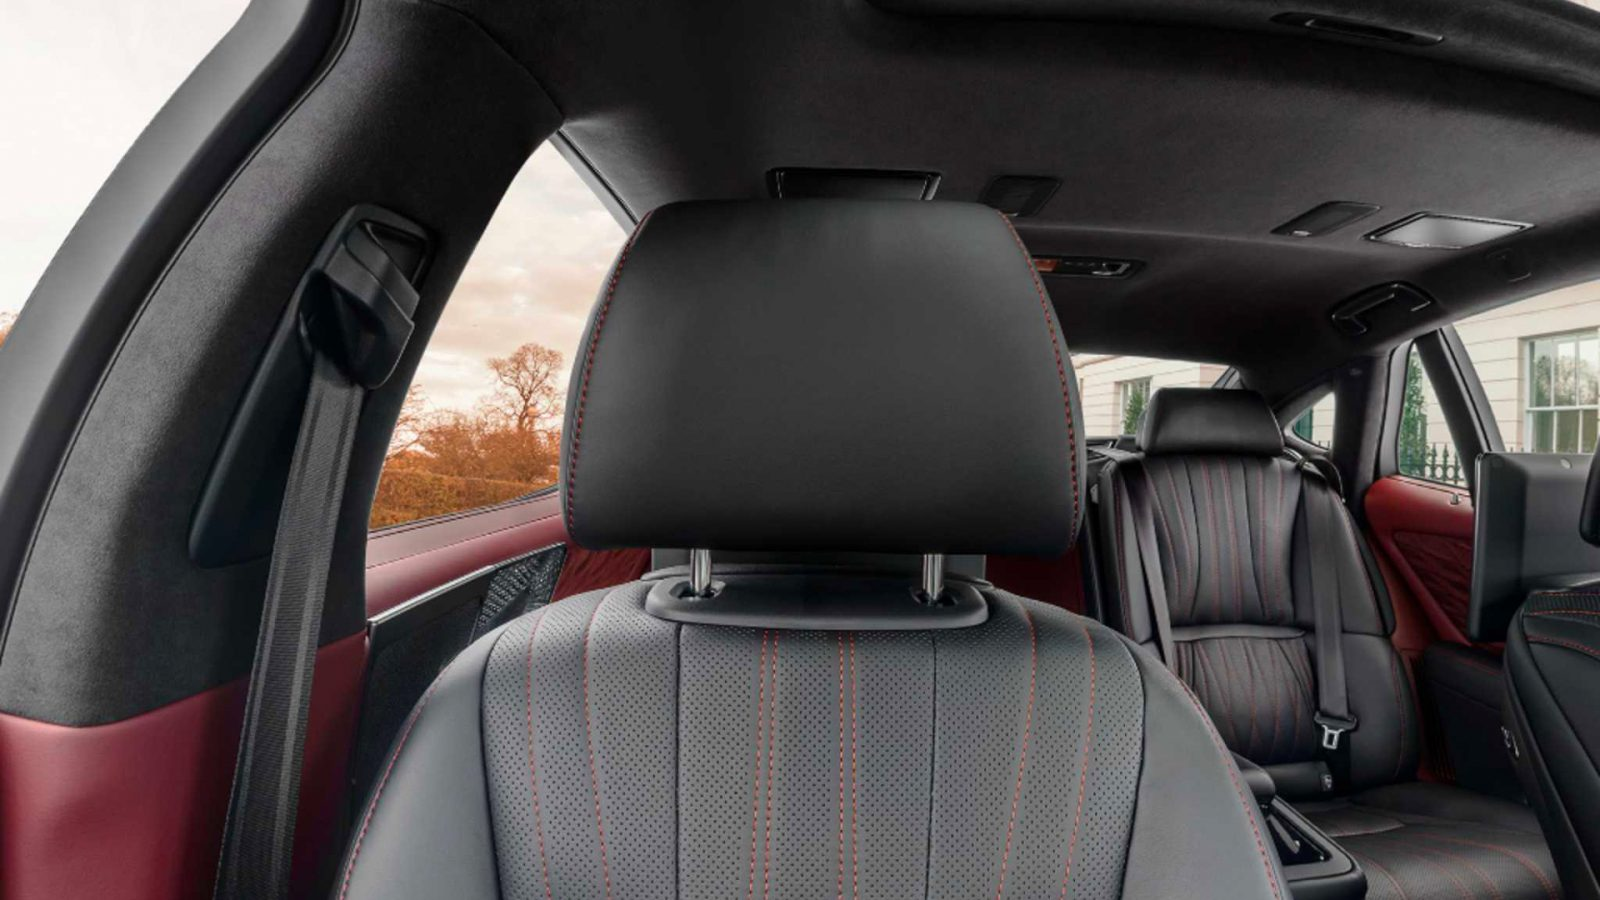 Virtual background of Lexus LS interior (front seat)